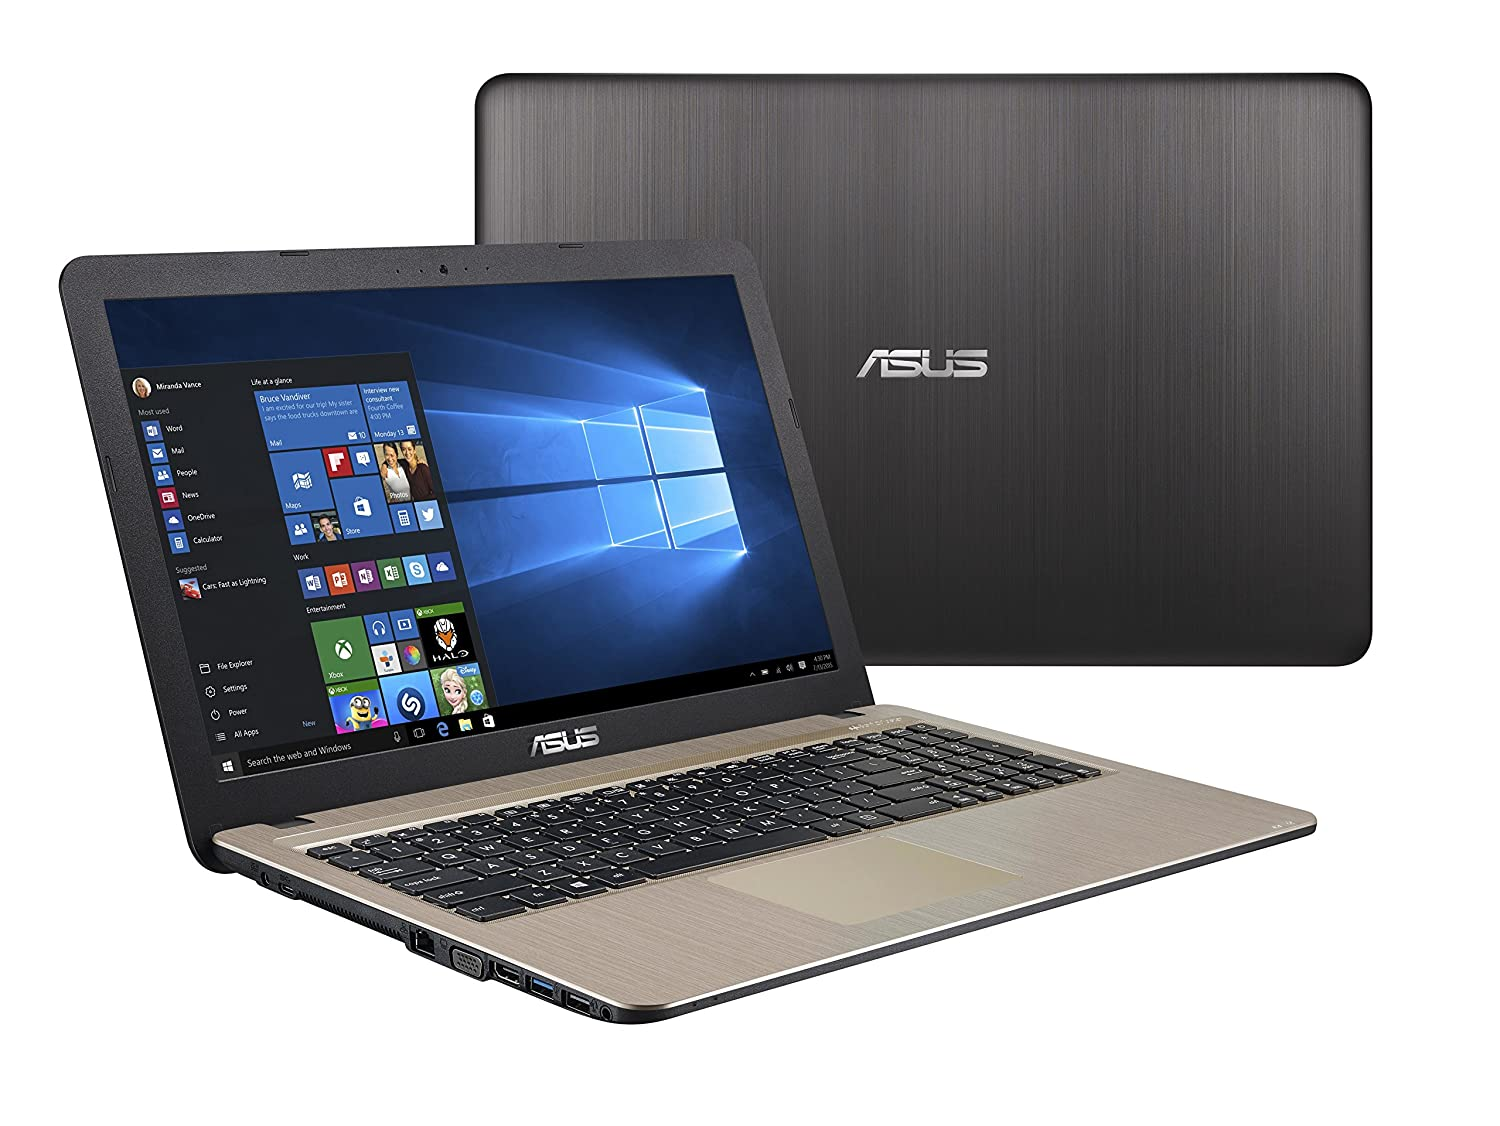 Asus 'NB x540na-gq017 15,6 Cel N3350 4 GB 500 GB DVD Endless (Linux Based)